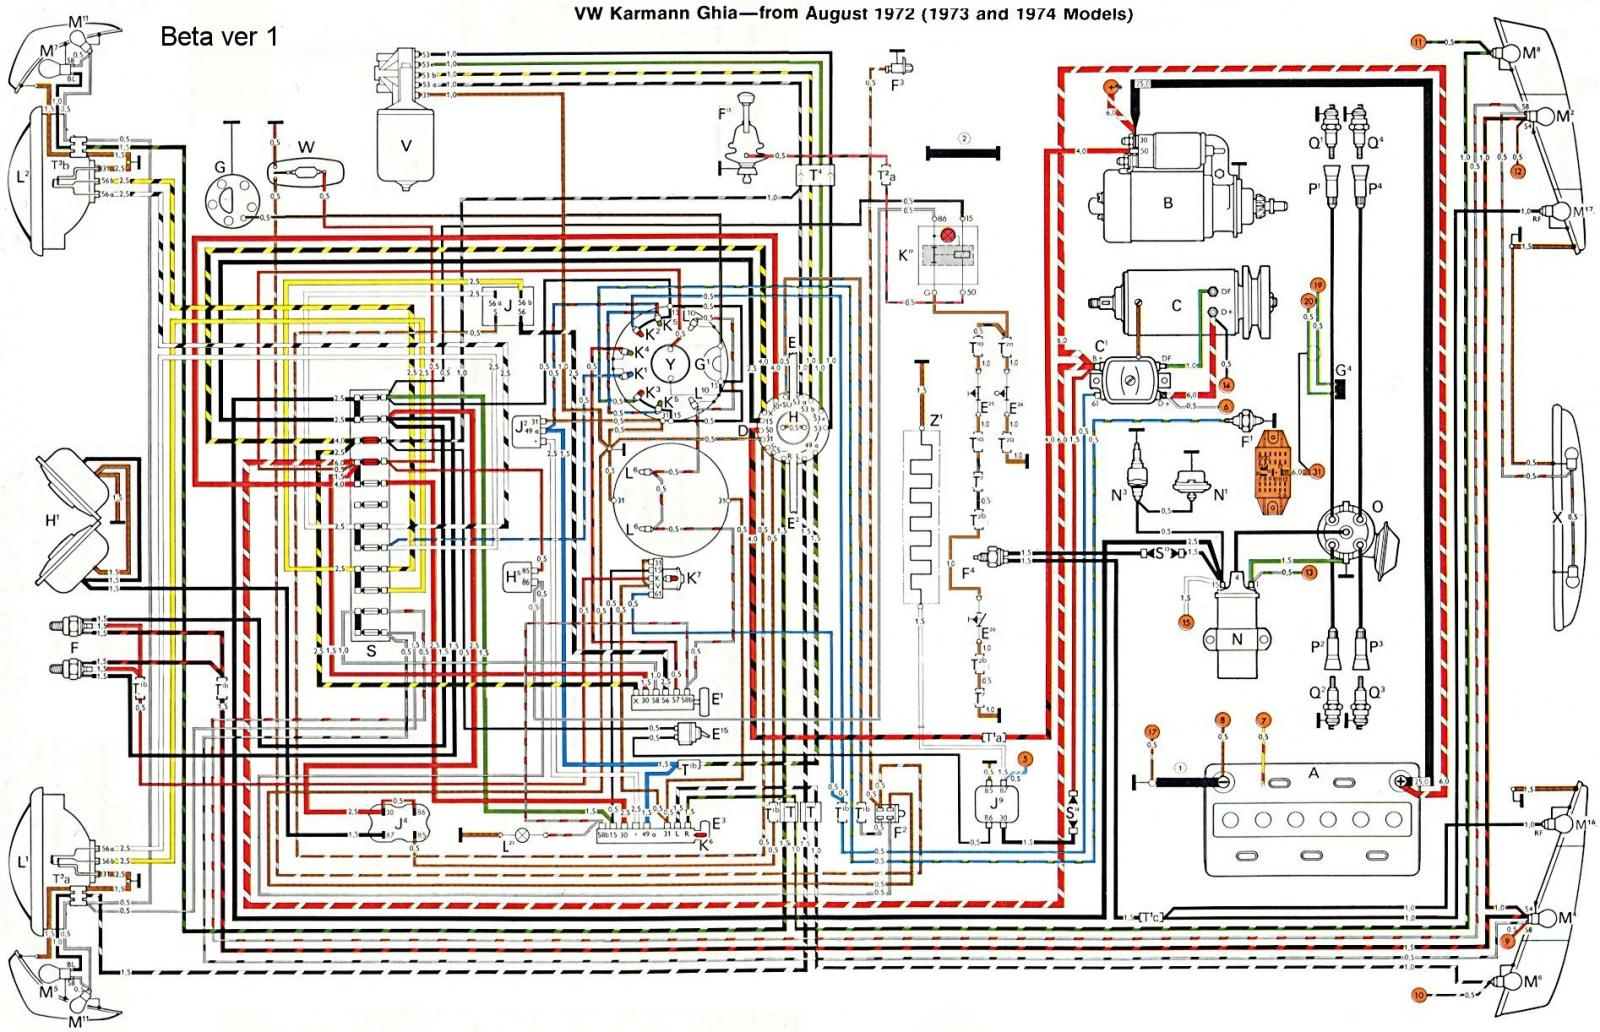 1188328 thesamba com ghia view topic 73 74 wiring diagram 1980 porsche 911 wiring diagram at suagrazia.org